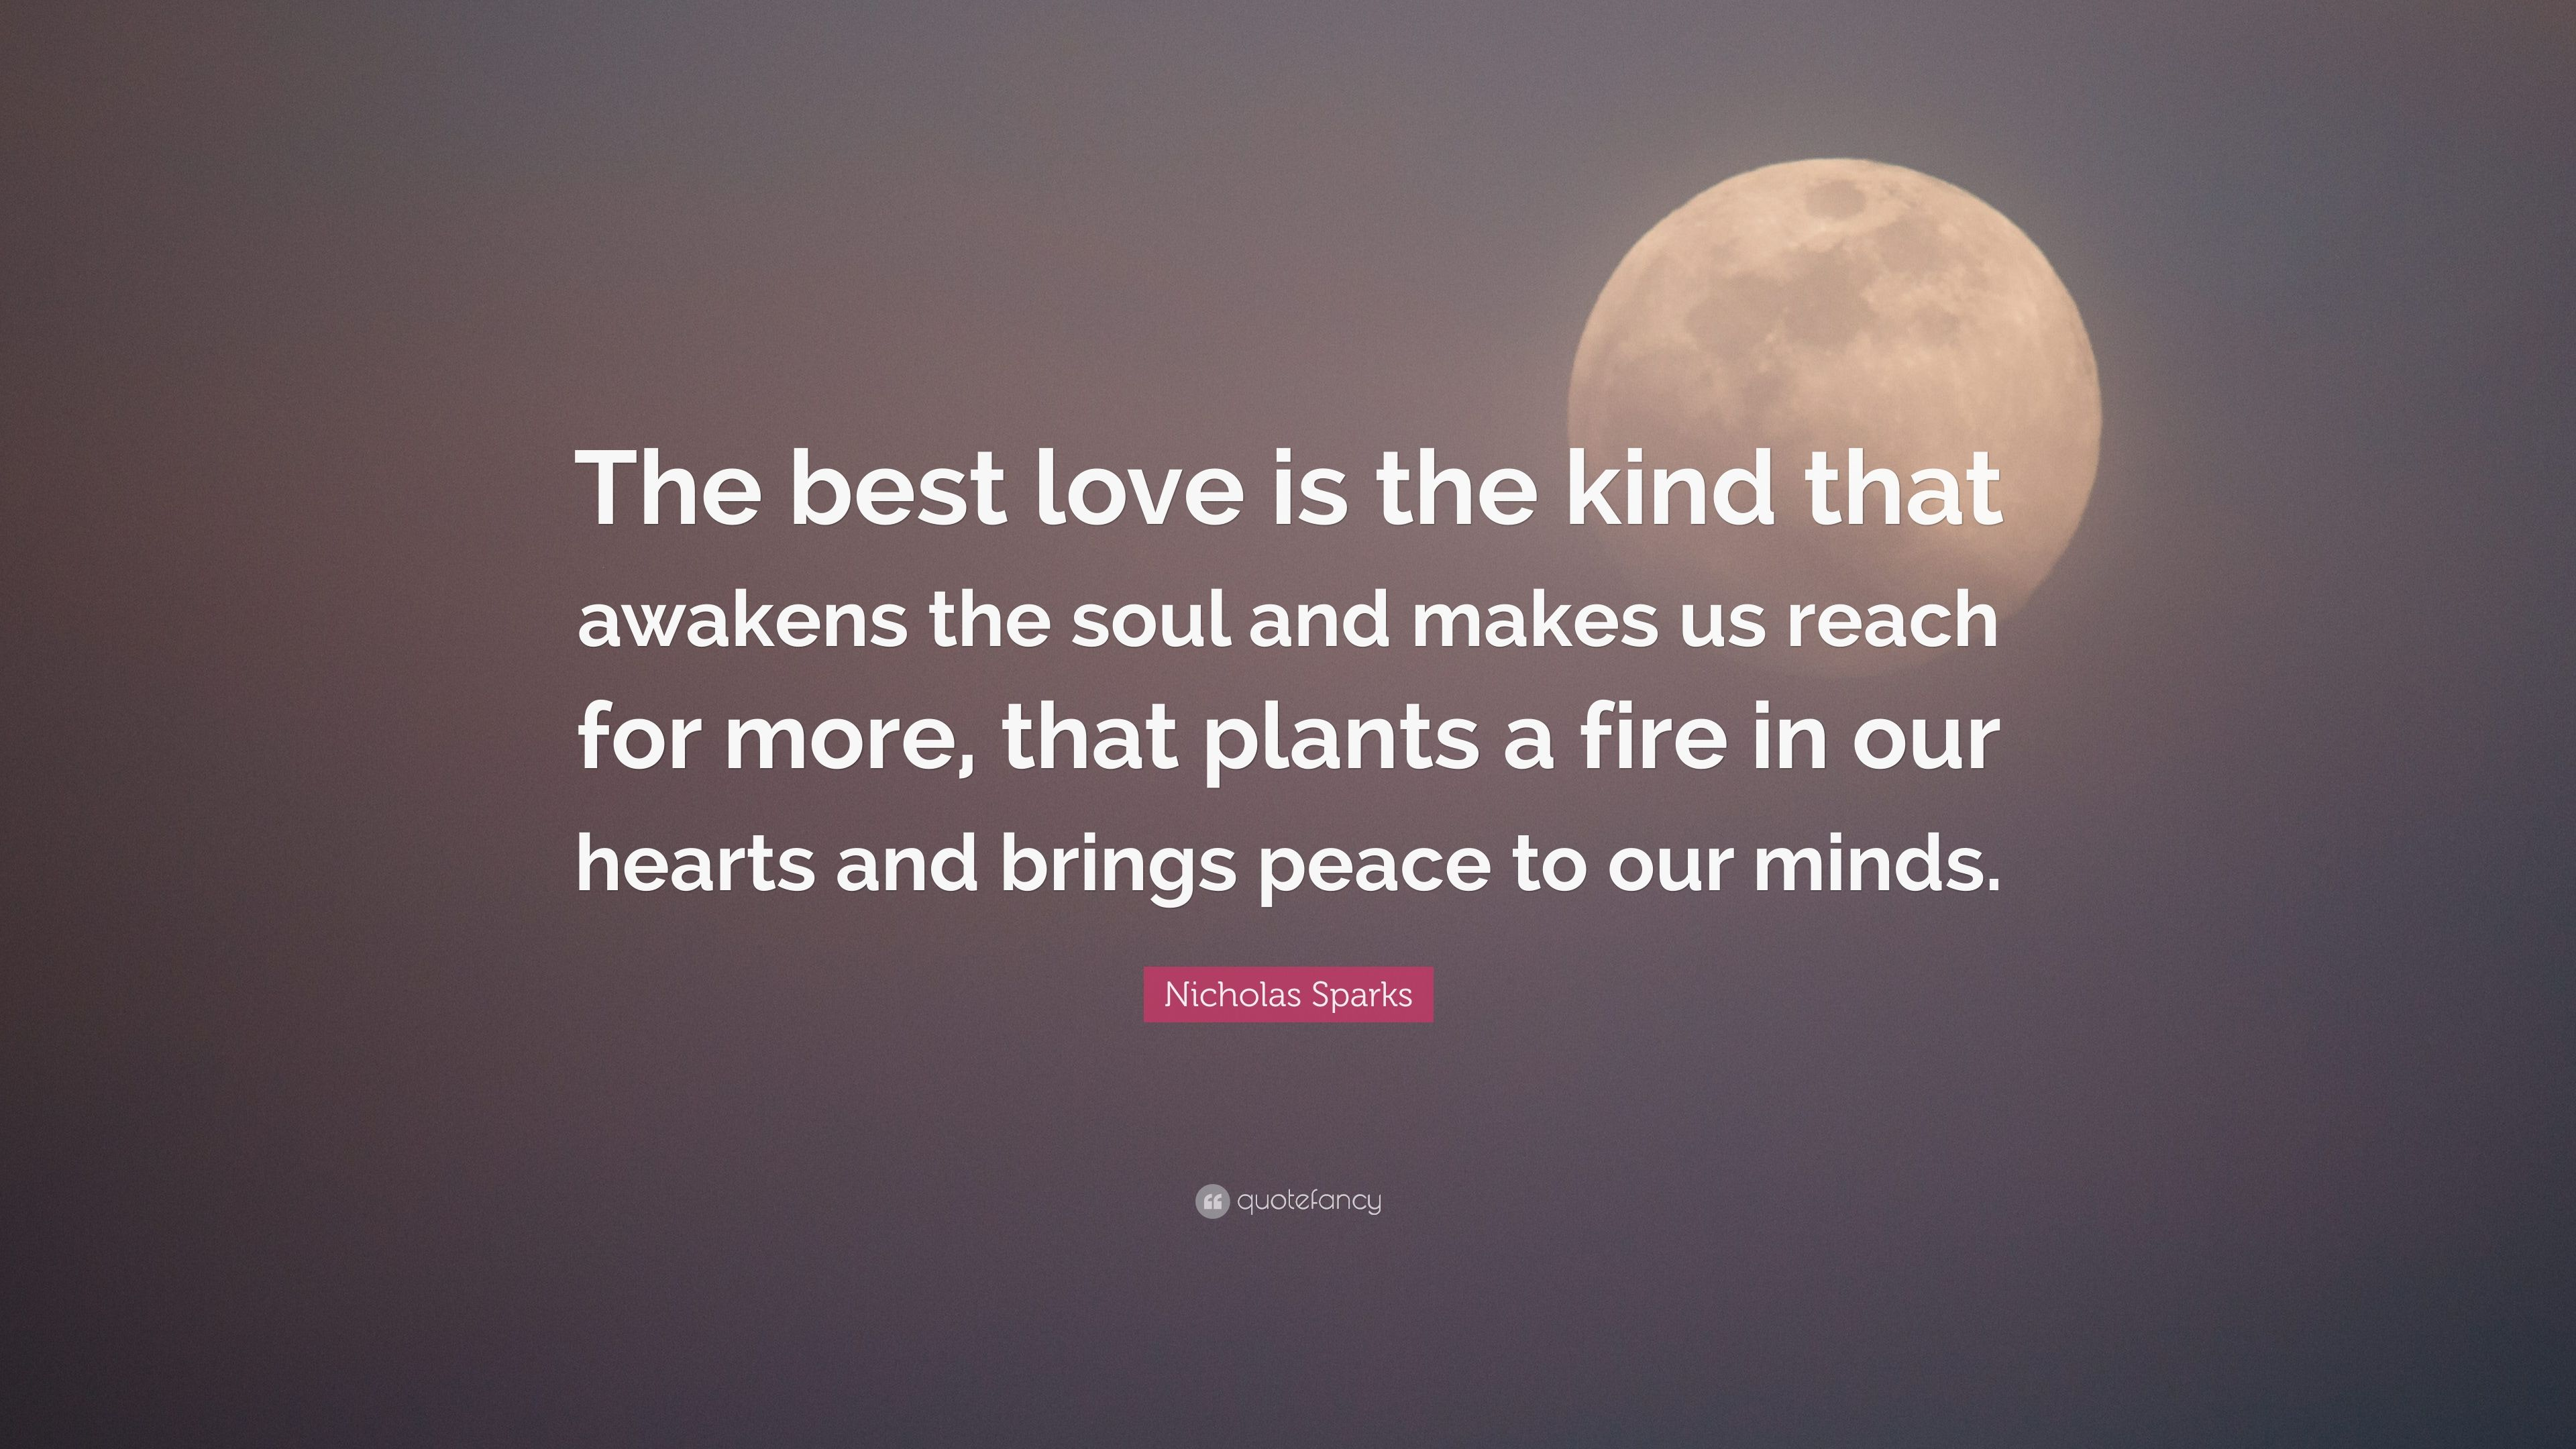 Nicholas Sparks Quote The Best Love Is The Kind That Awakens The